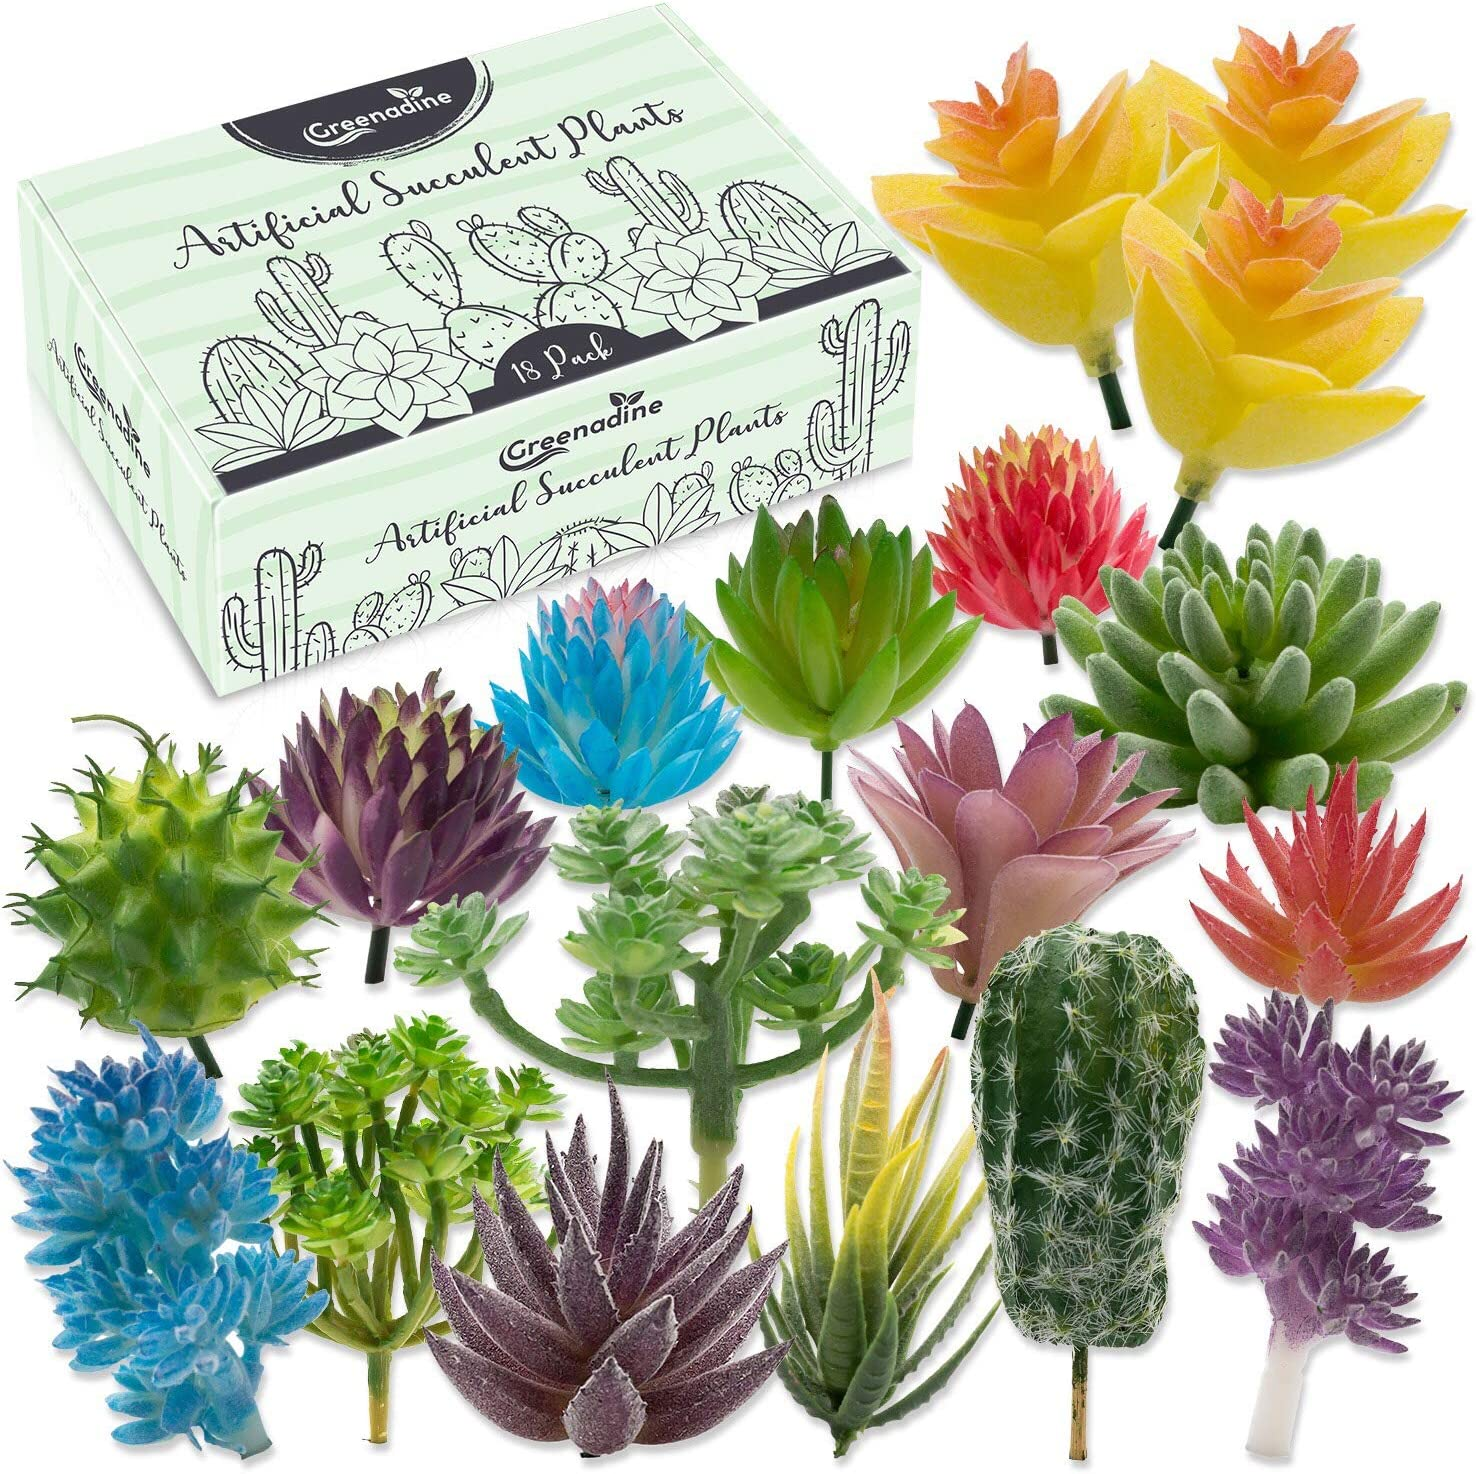 Premium Artificial Succulent Plants - 18 Pack - Fake Succulent Plants Variety Pack With Small, Medium & Large - Unique Feaux Succulent Plants Unpotted For Patios And Home Decor - Artificial Succulents